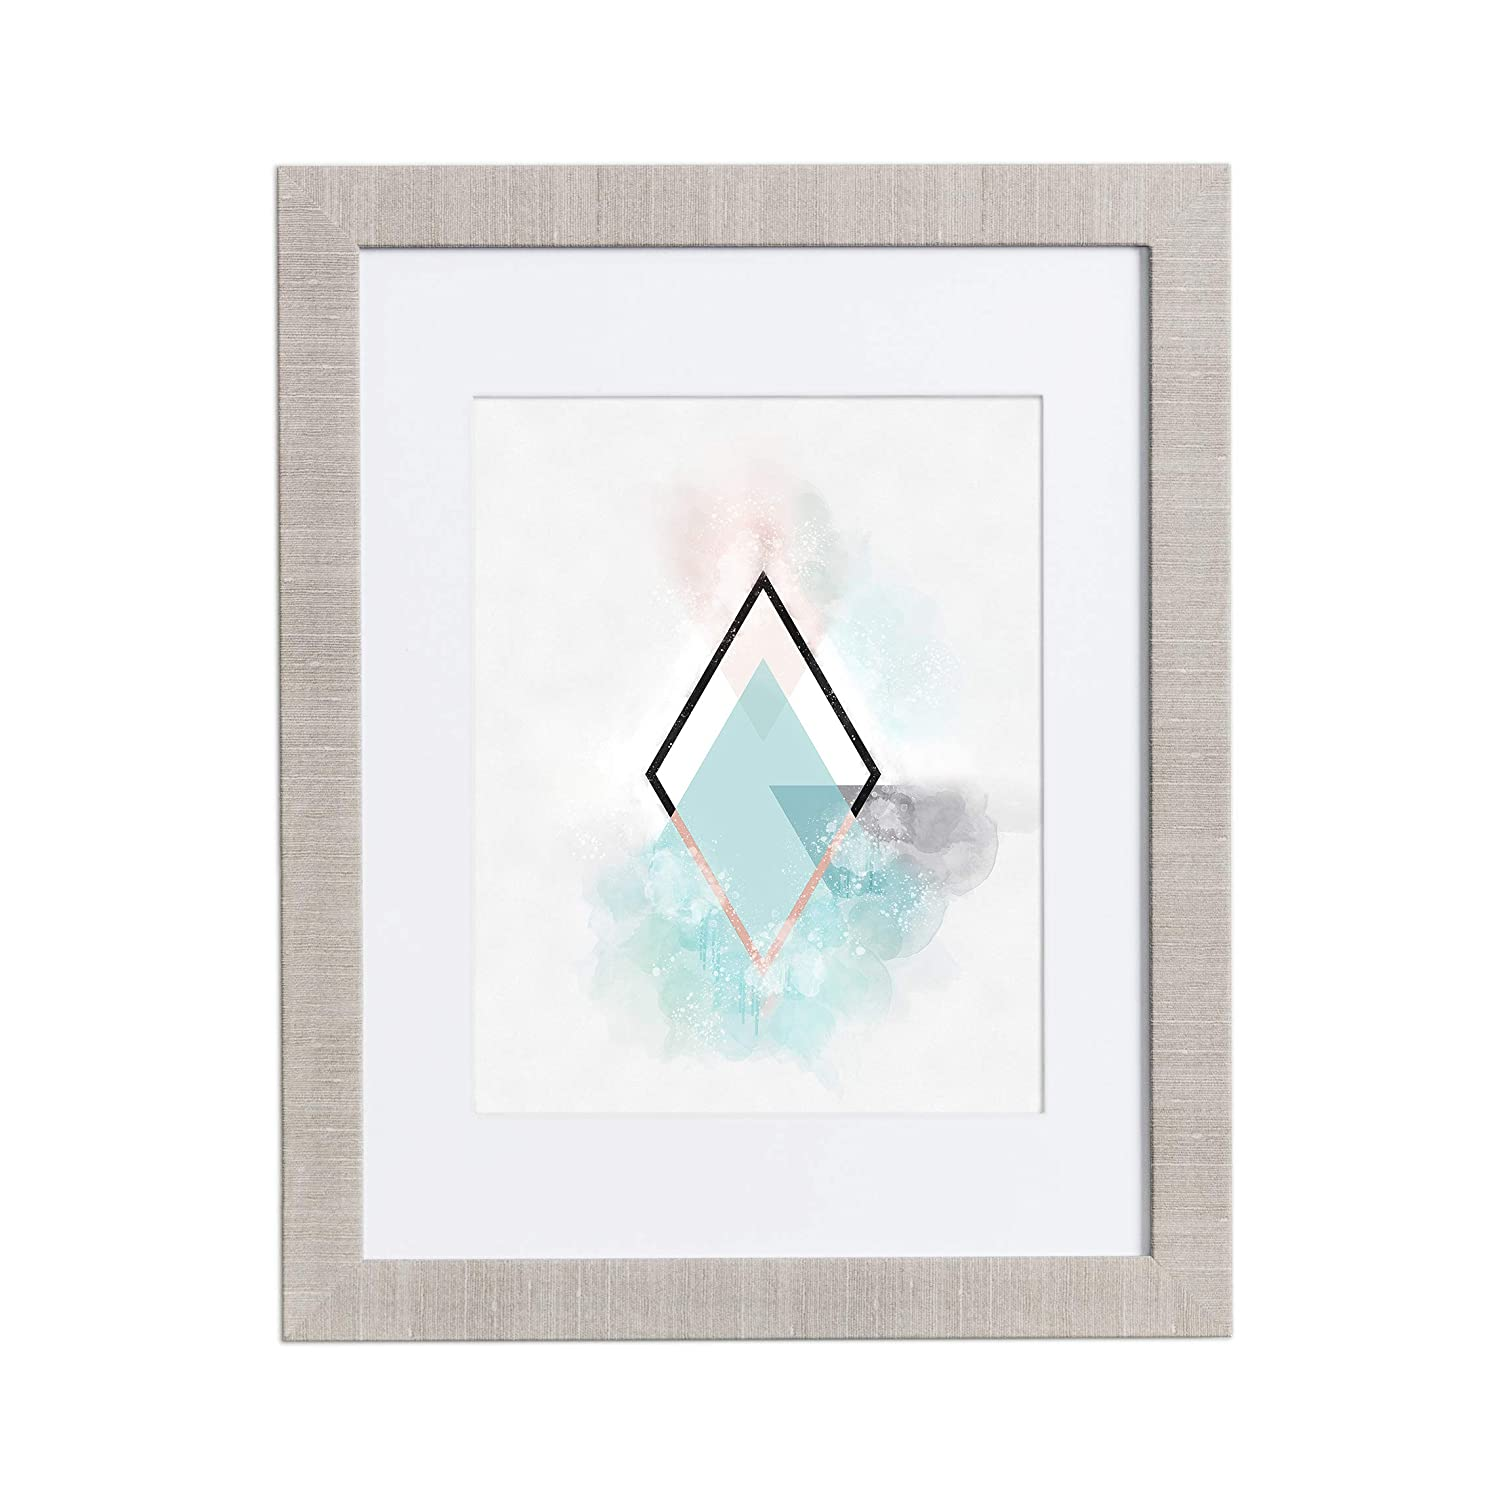 Amazon.com - 11x14 Picture Frame Modern Gray - Matted to 8x10 ...